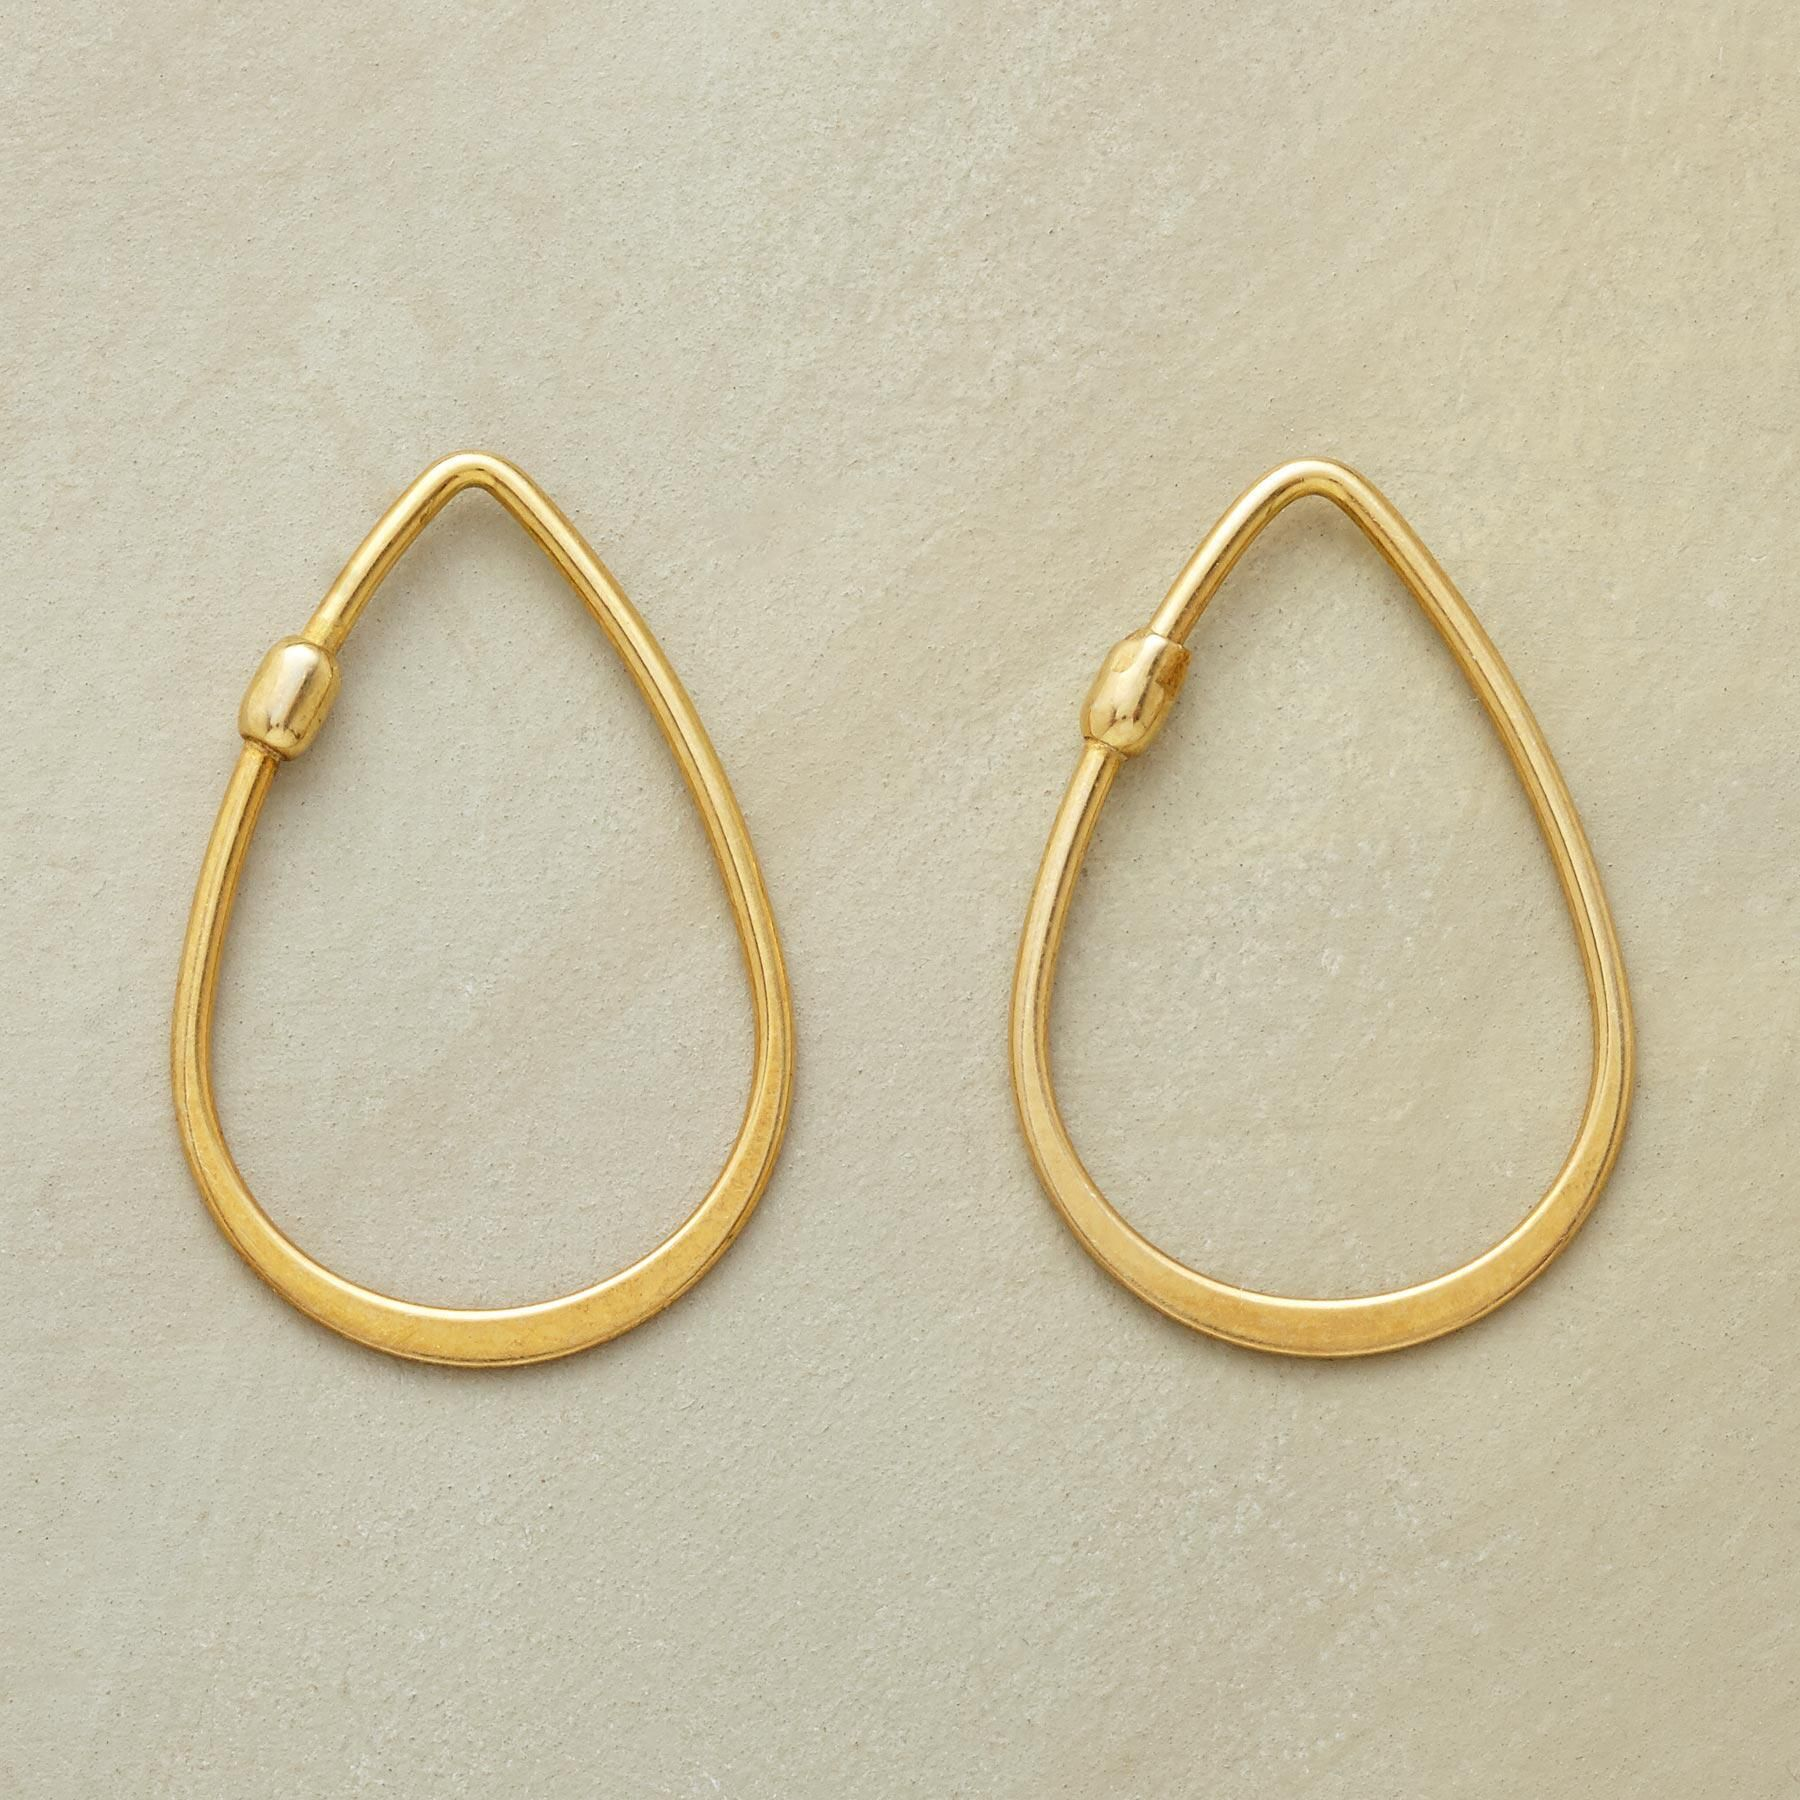 Golden Teardrop Hoops Simply Elegant Forged 18kt Gold Plate Hoop Earrings Level Out As They Round The Curve Self Locking With One End Slipping